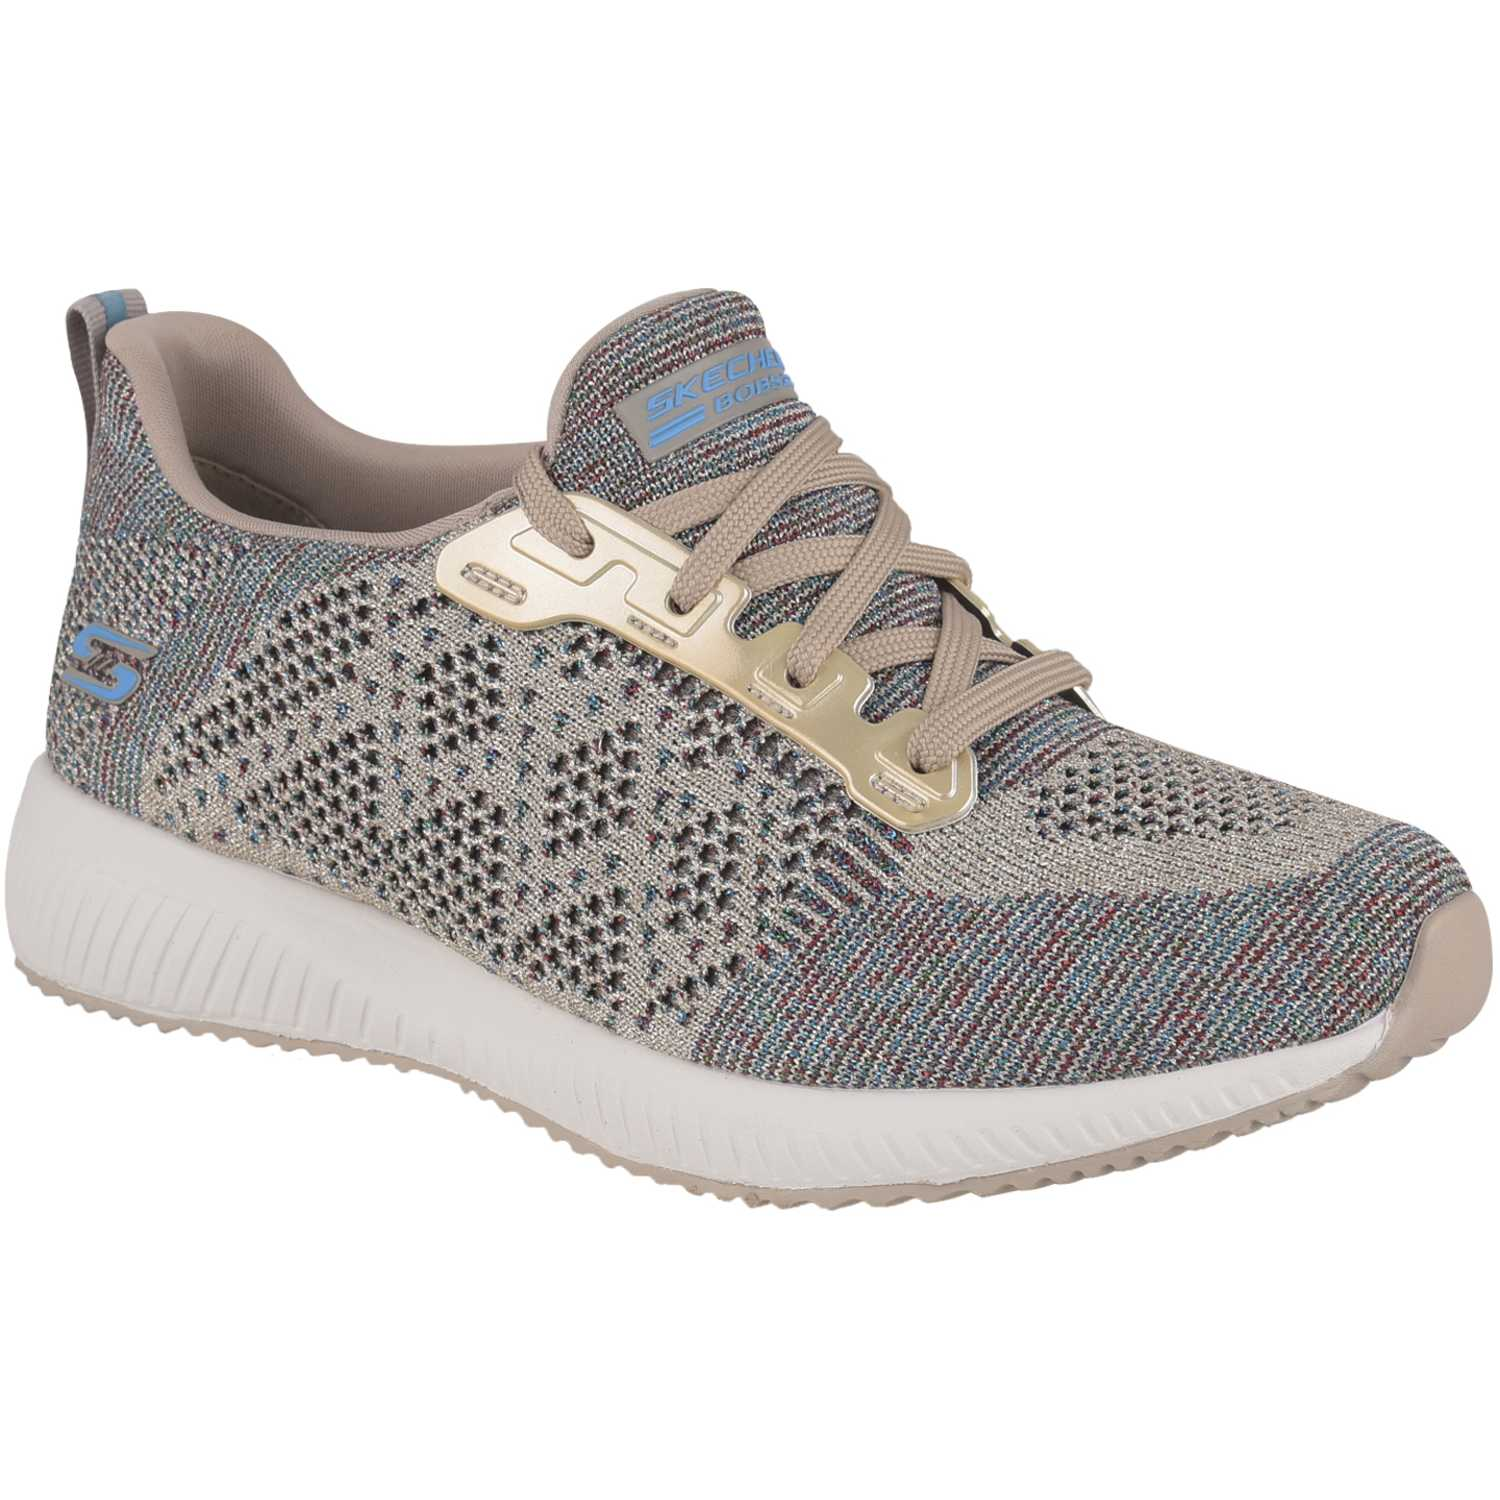 Skechers bobs squad - pop color Gris Walking